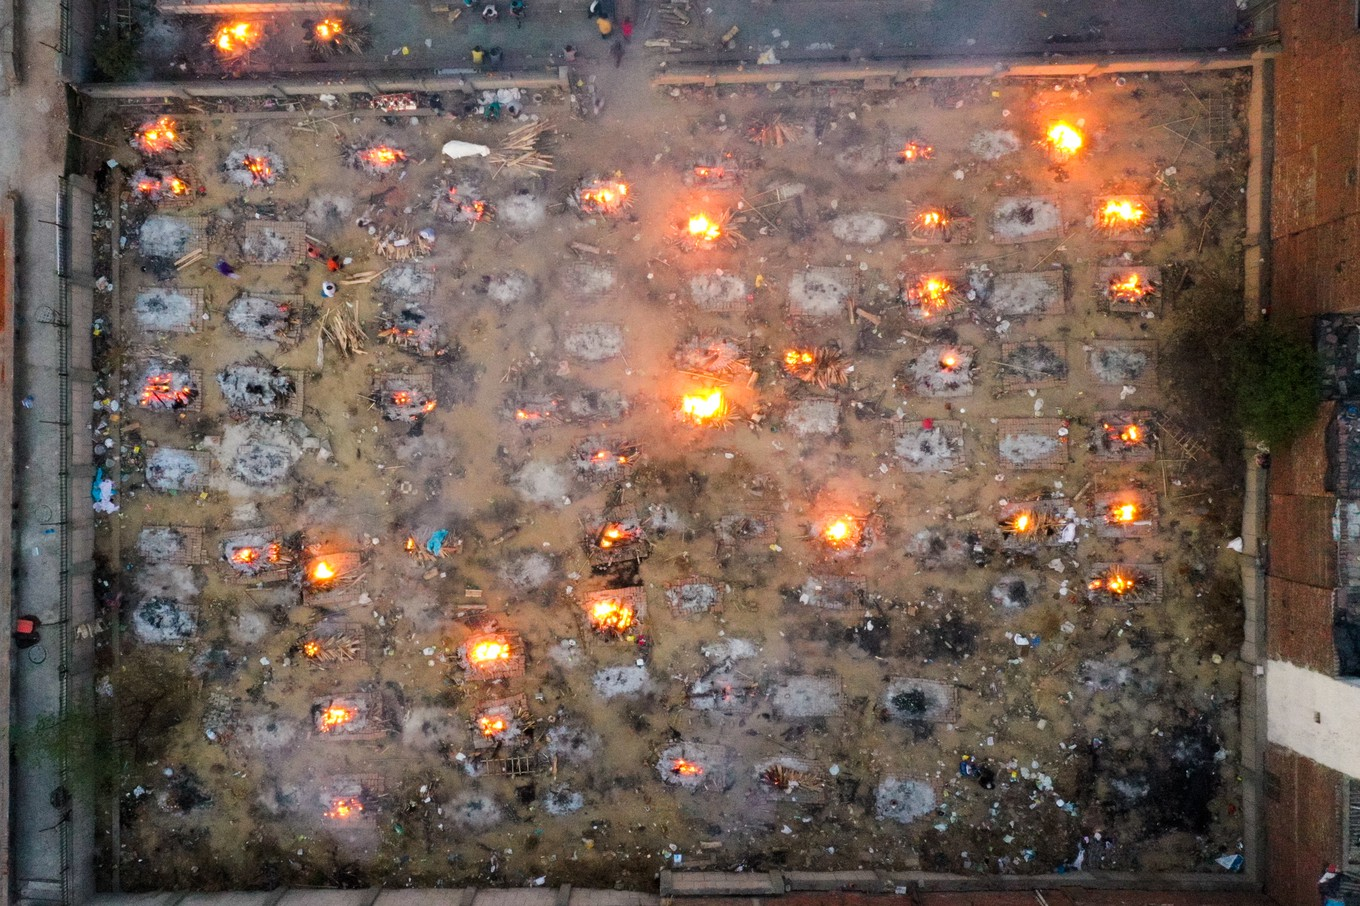 In this aerial picture taken on April 26, 2021, burning pyres of victims who lost their lives due to the Covid-19 coronavirus are seen at a cremation ground in New Delhi. (Photo by Jewel SAMAD / AFP)